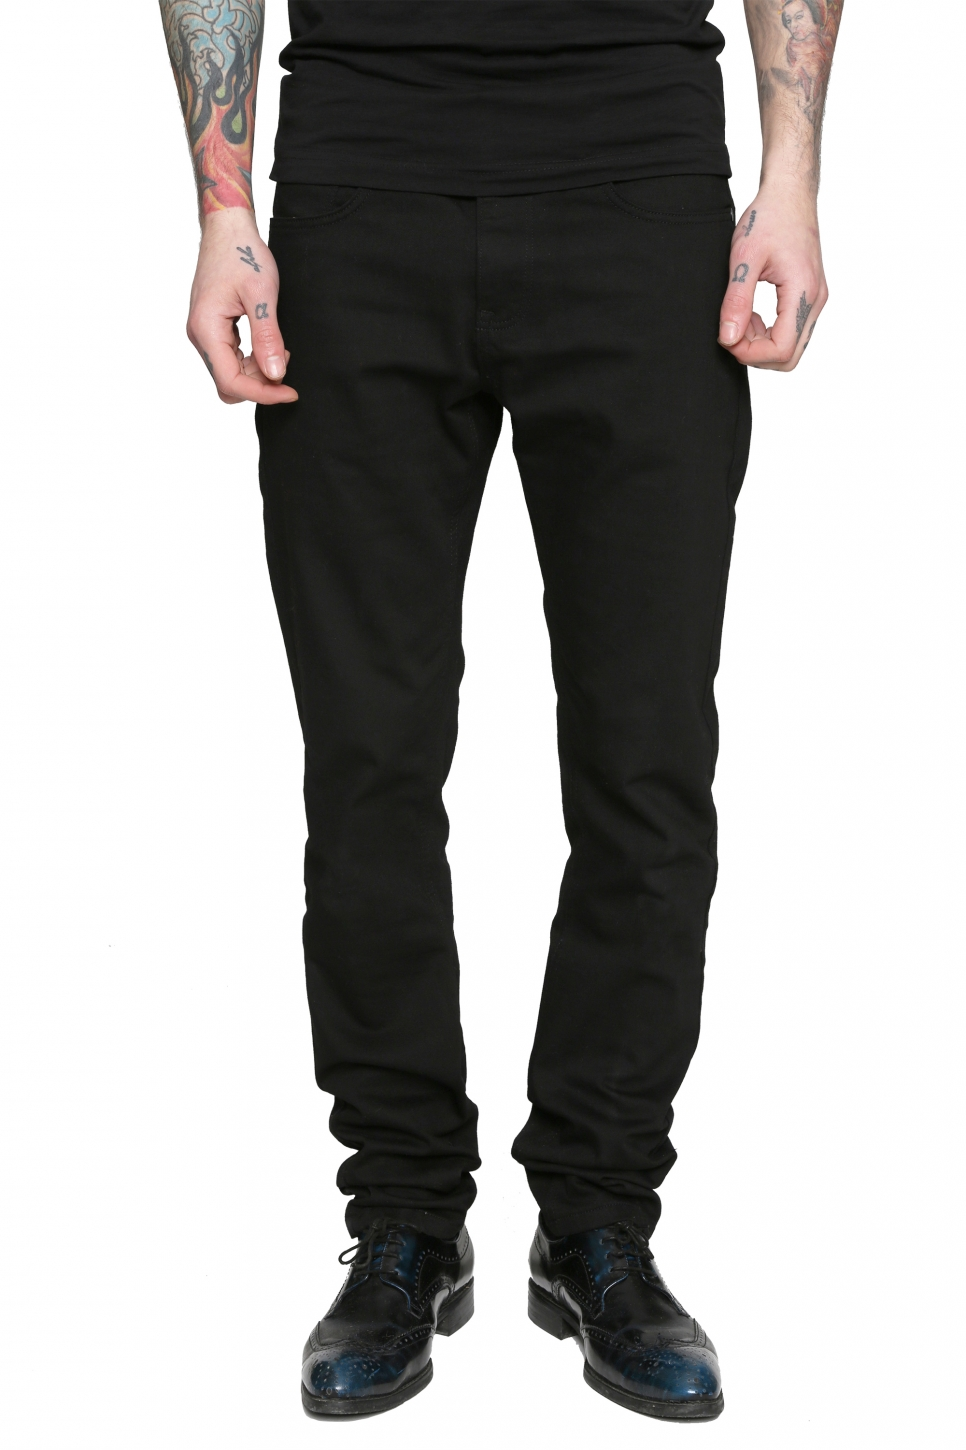 Run Black Rabbit Slim Jean Pantolon